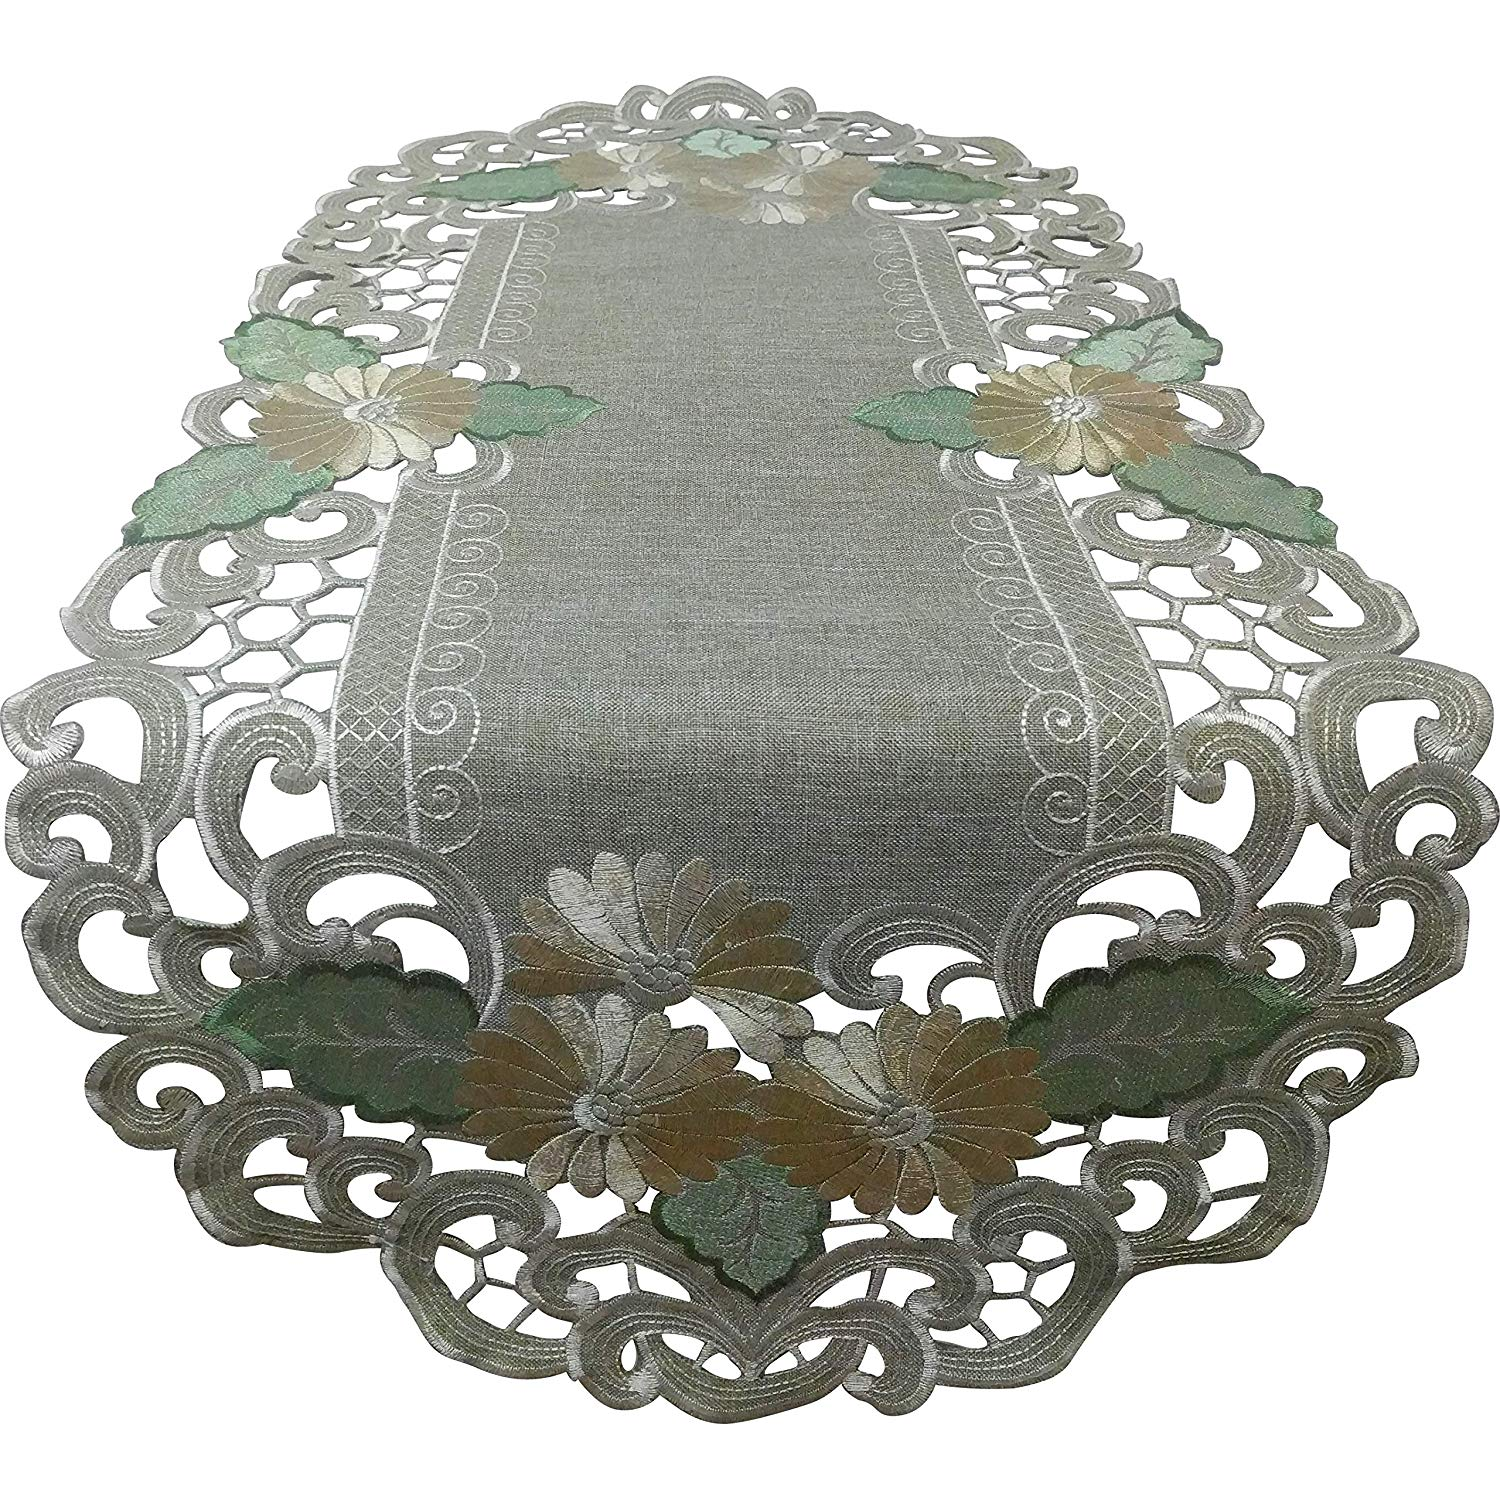 Doily Boutique Table Runner with Gold Daisies on Sage Green Burlap Linen Type Fabric, Size 35 x 16 inches